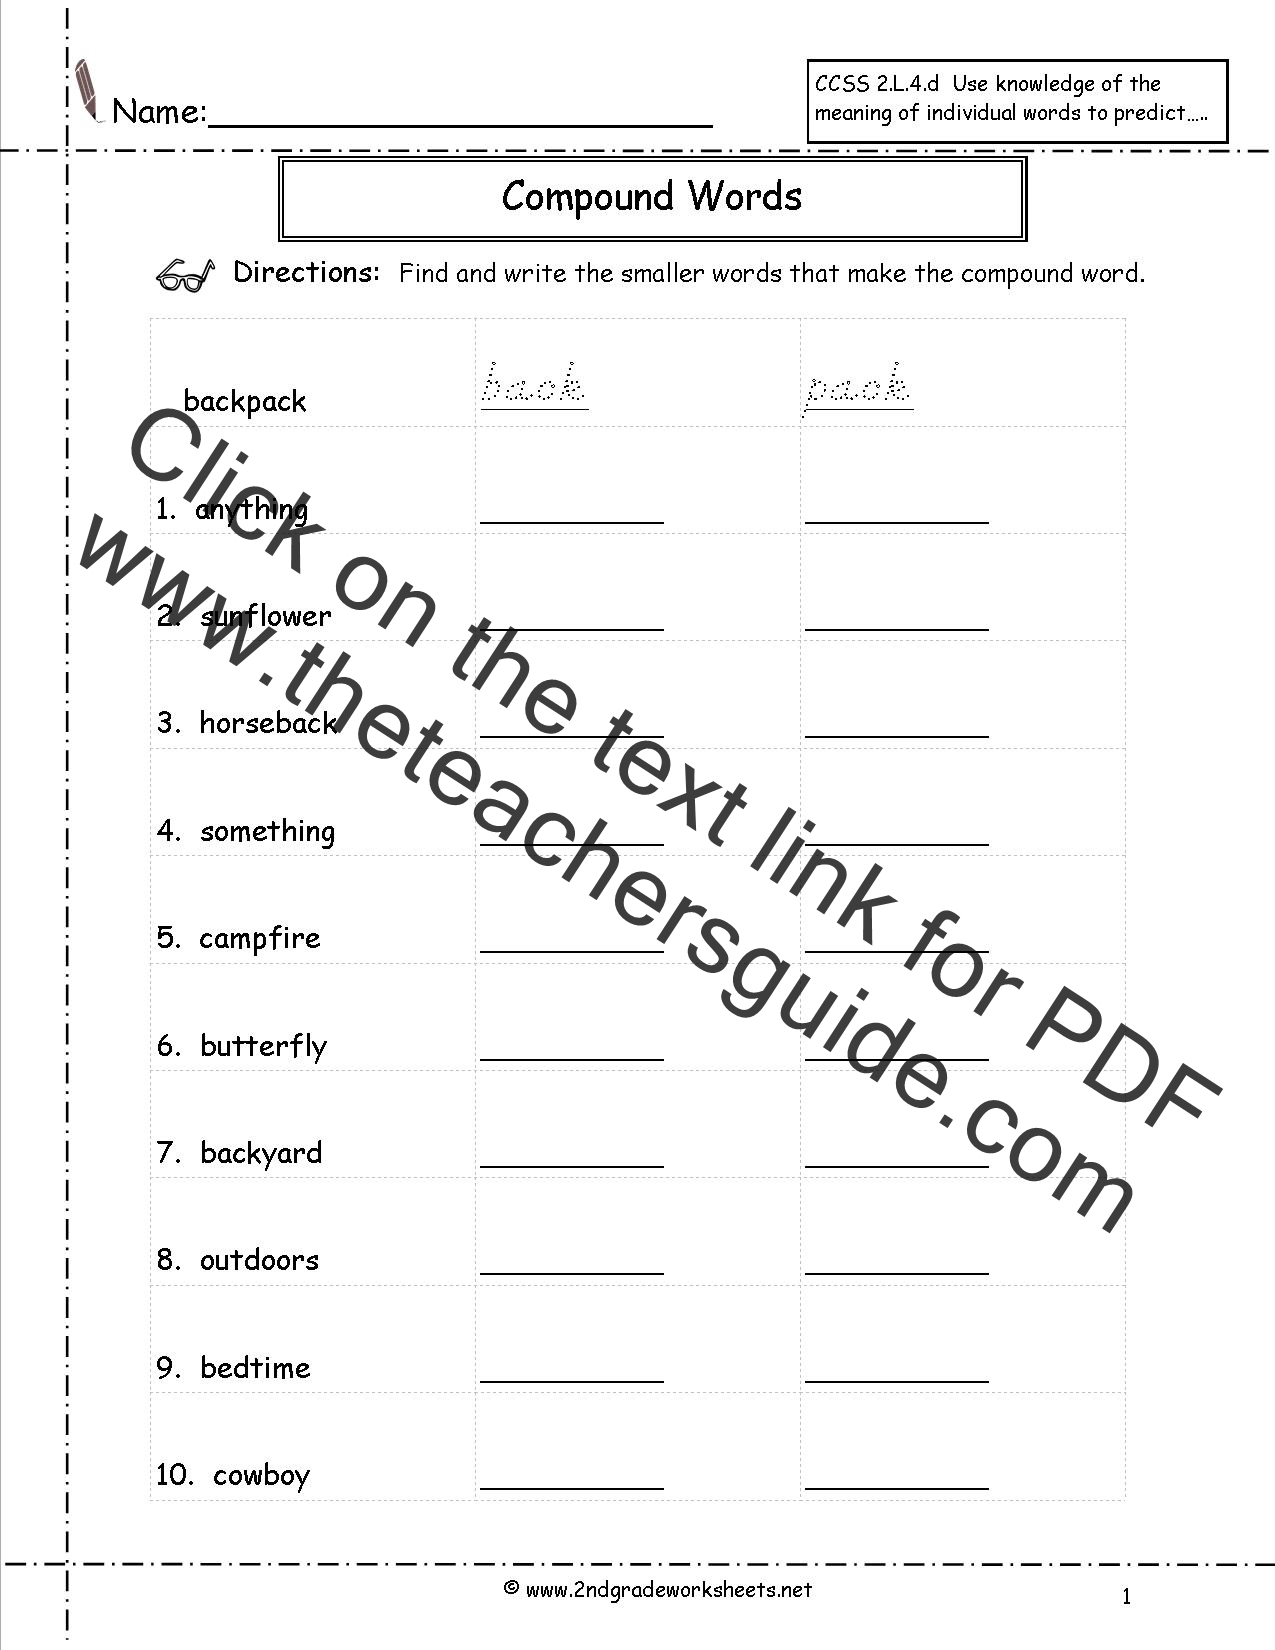 Printables Free Printable Contraction Worksheets free languagegrammar worksheets and printouts compound words worksheets